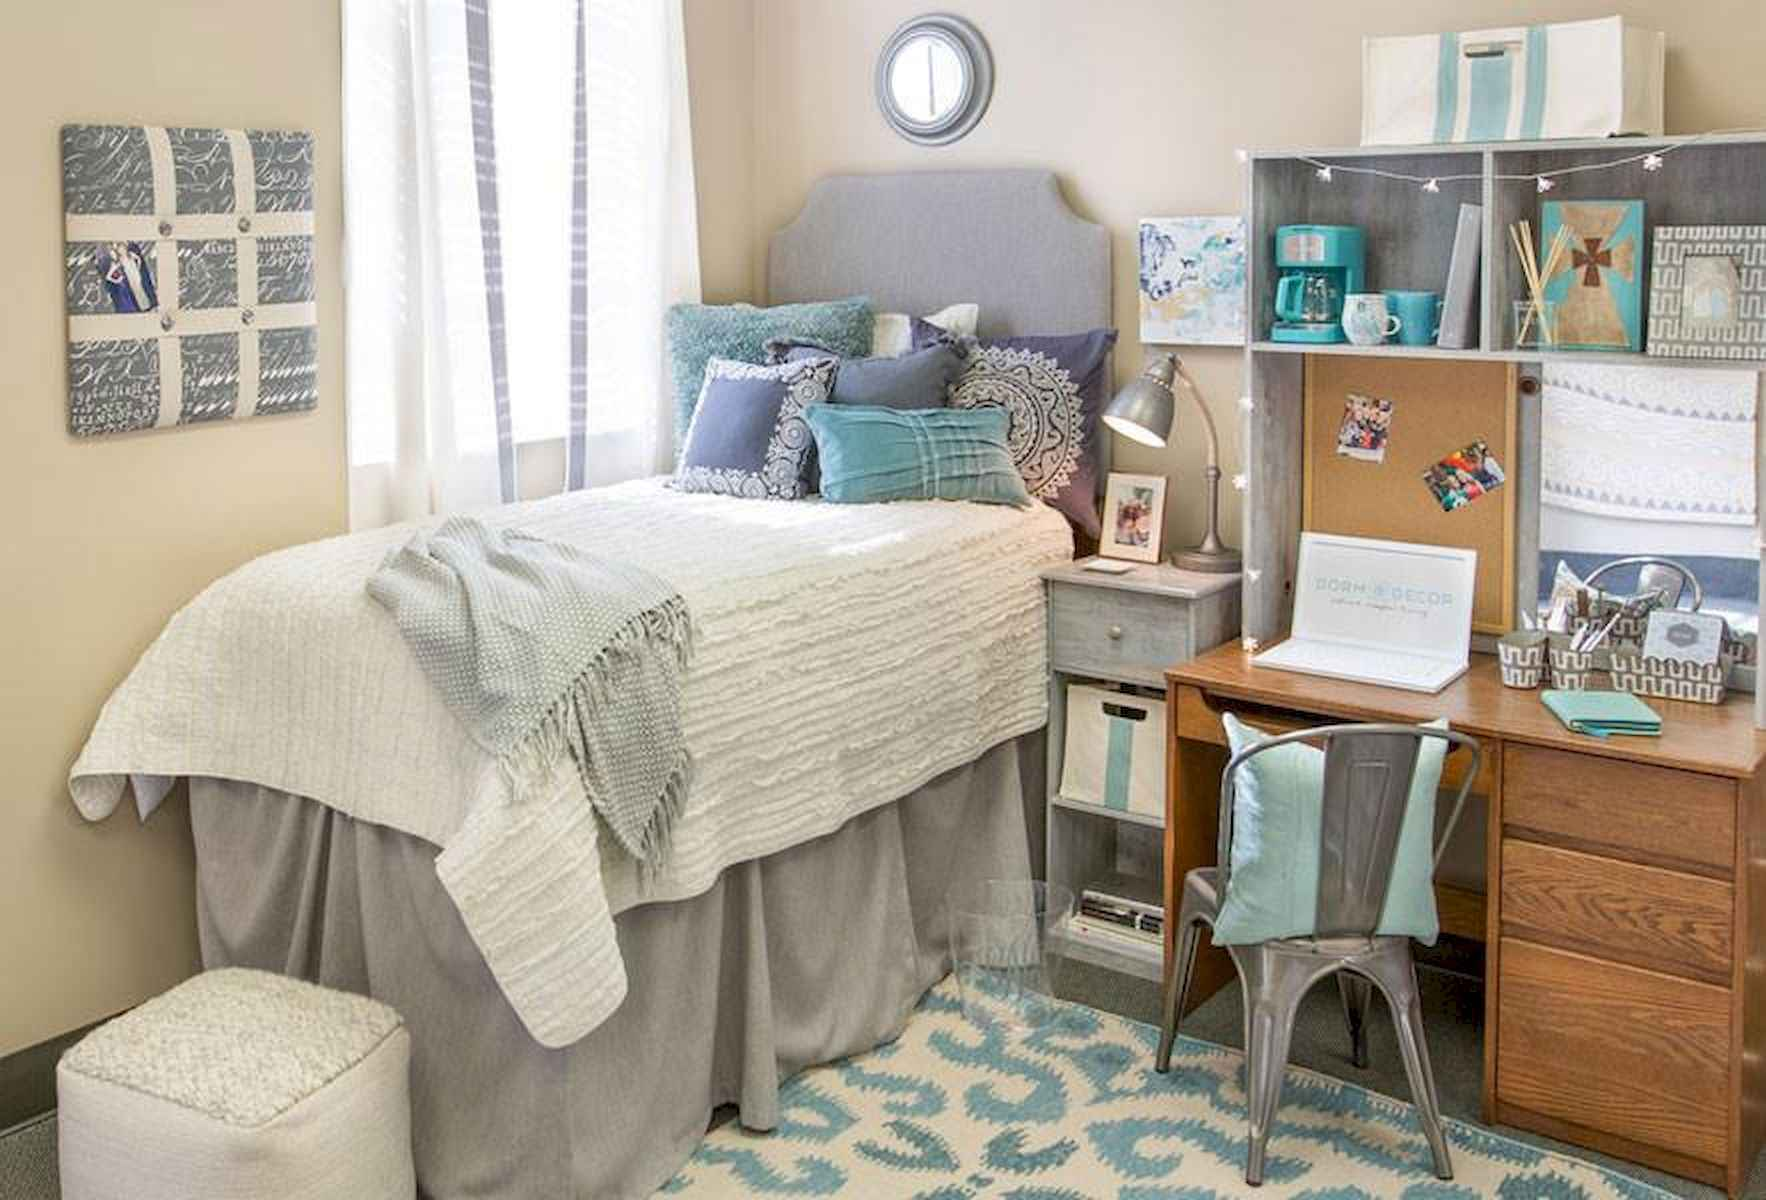 60 Gorgeous College Dorm Room Decorating Ideas And Makeover (25)